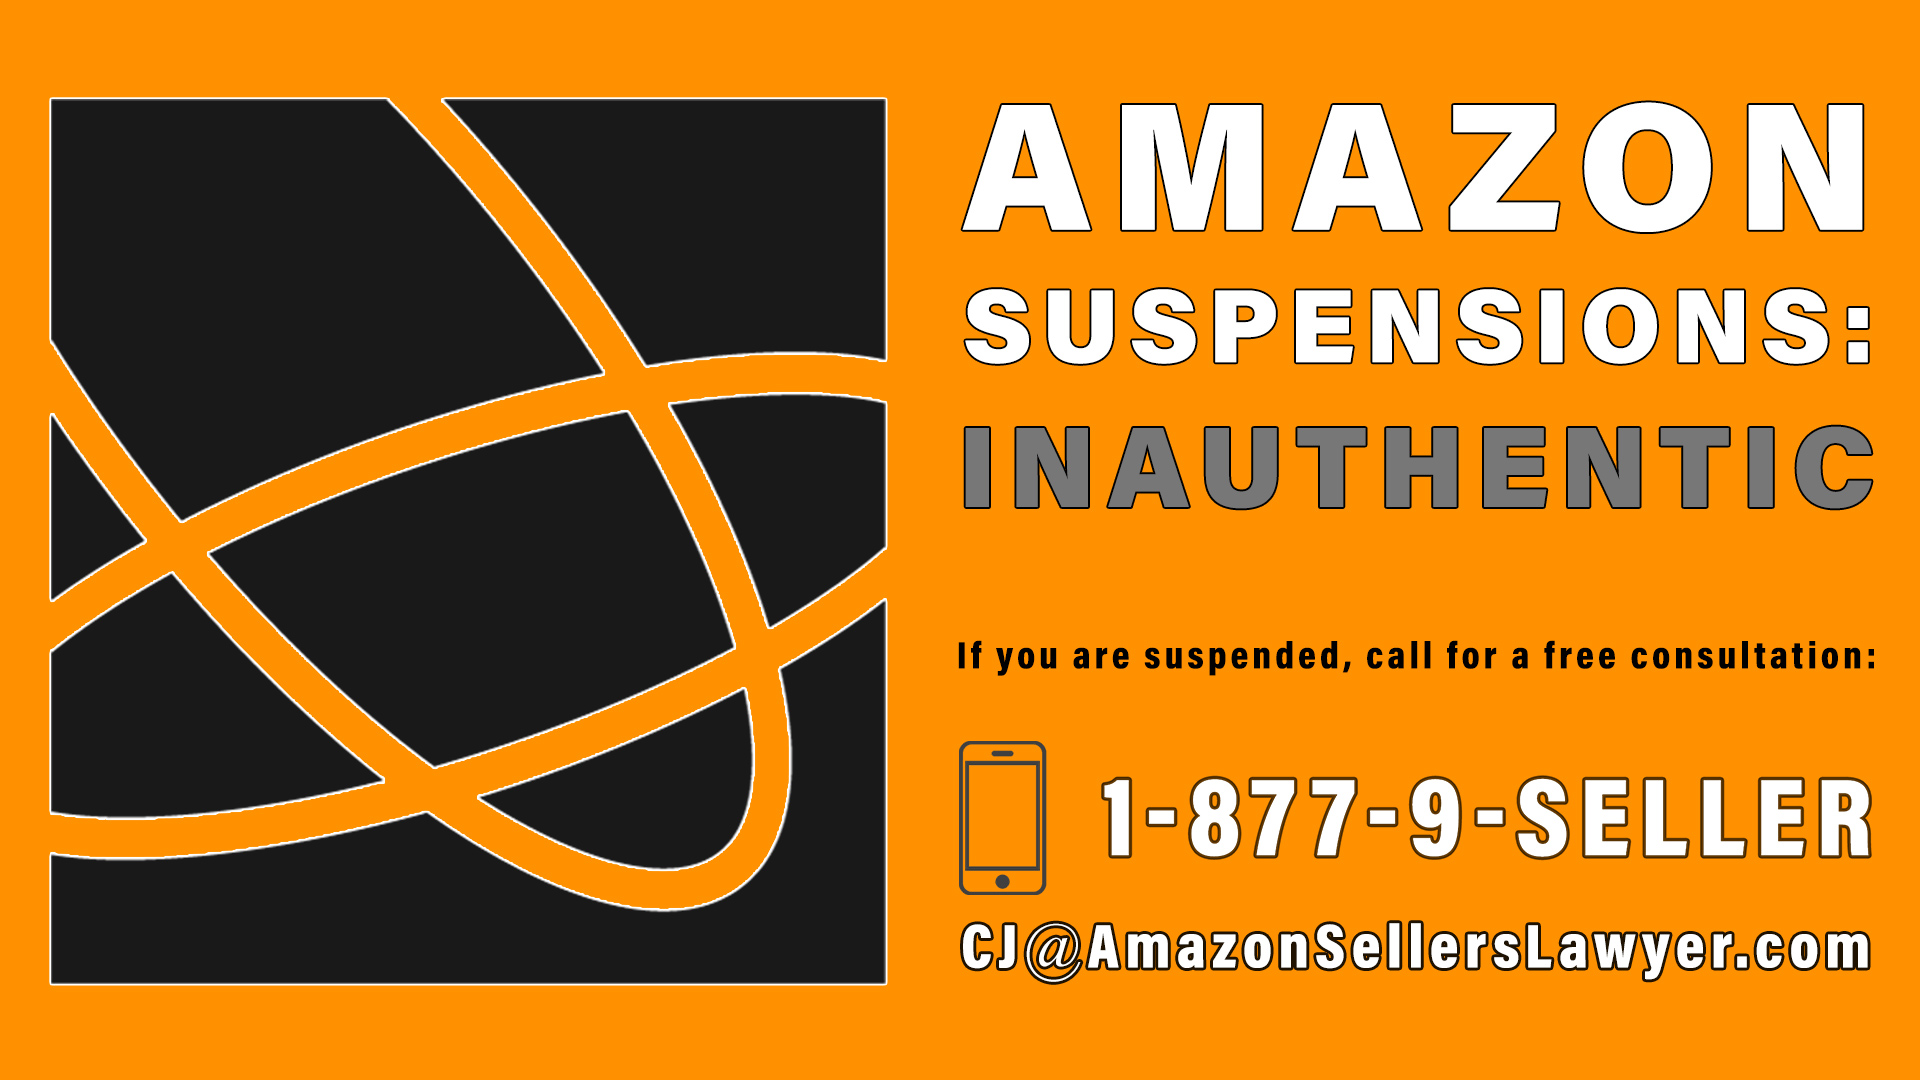 inauthentic amazon suspensions